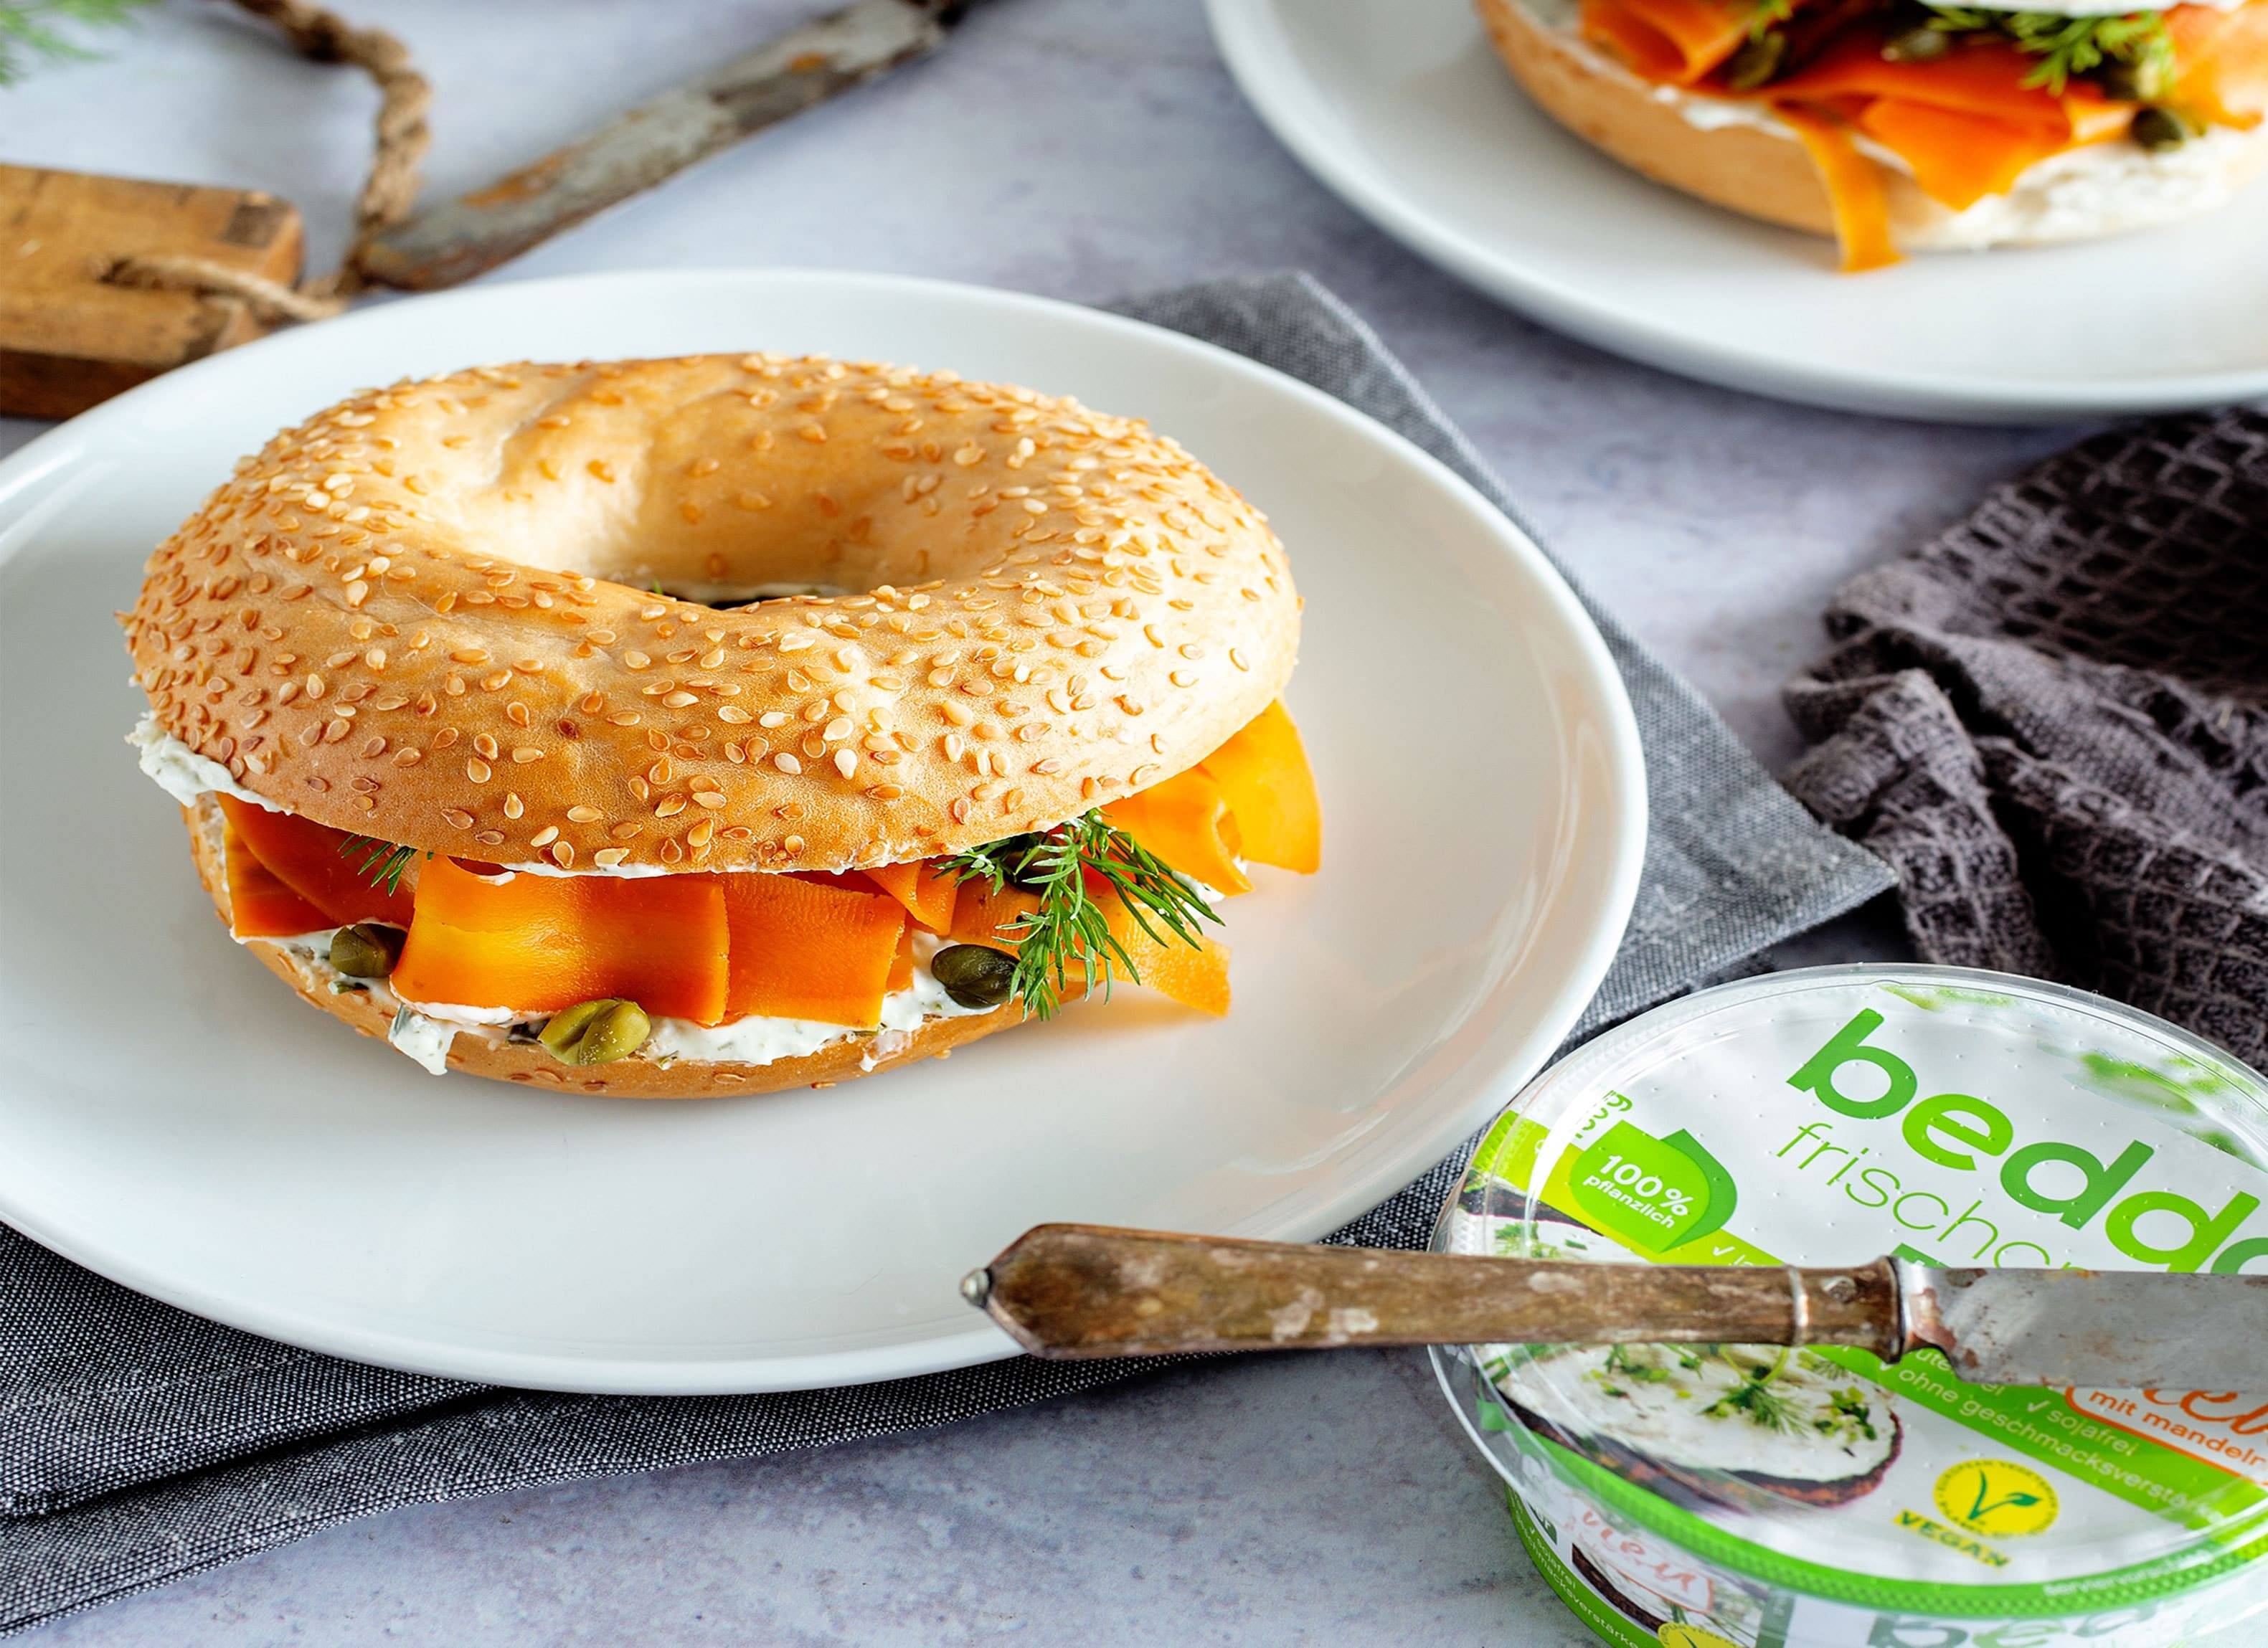 Bagel mit veganer Alternative zu Räucherlachs aus Karotten